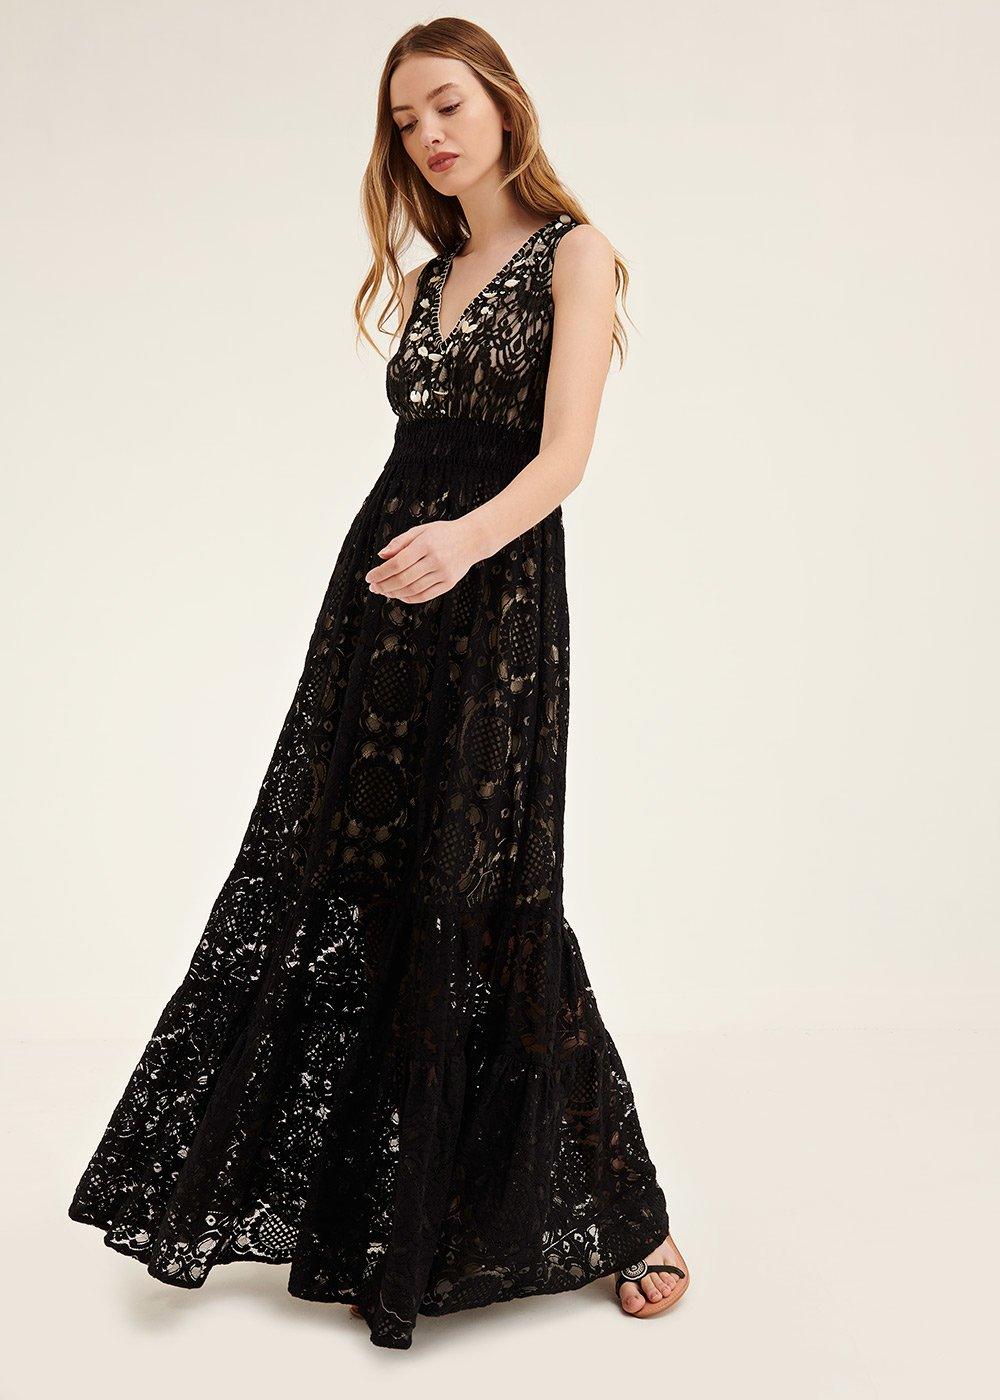 Anthony embroidered lace dress - Black - Woman